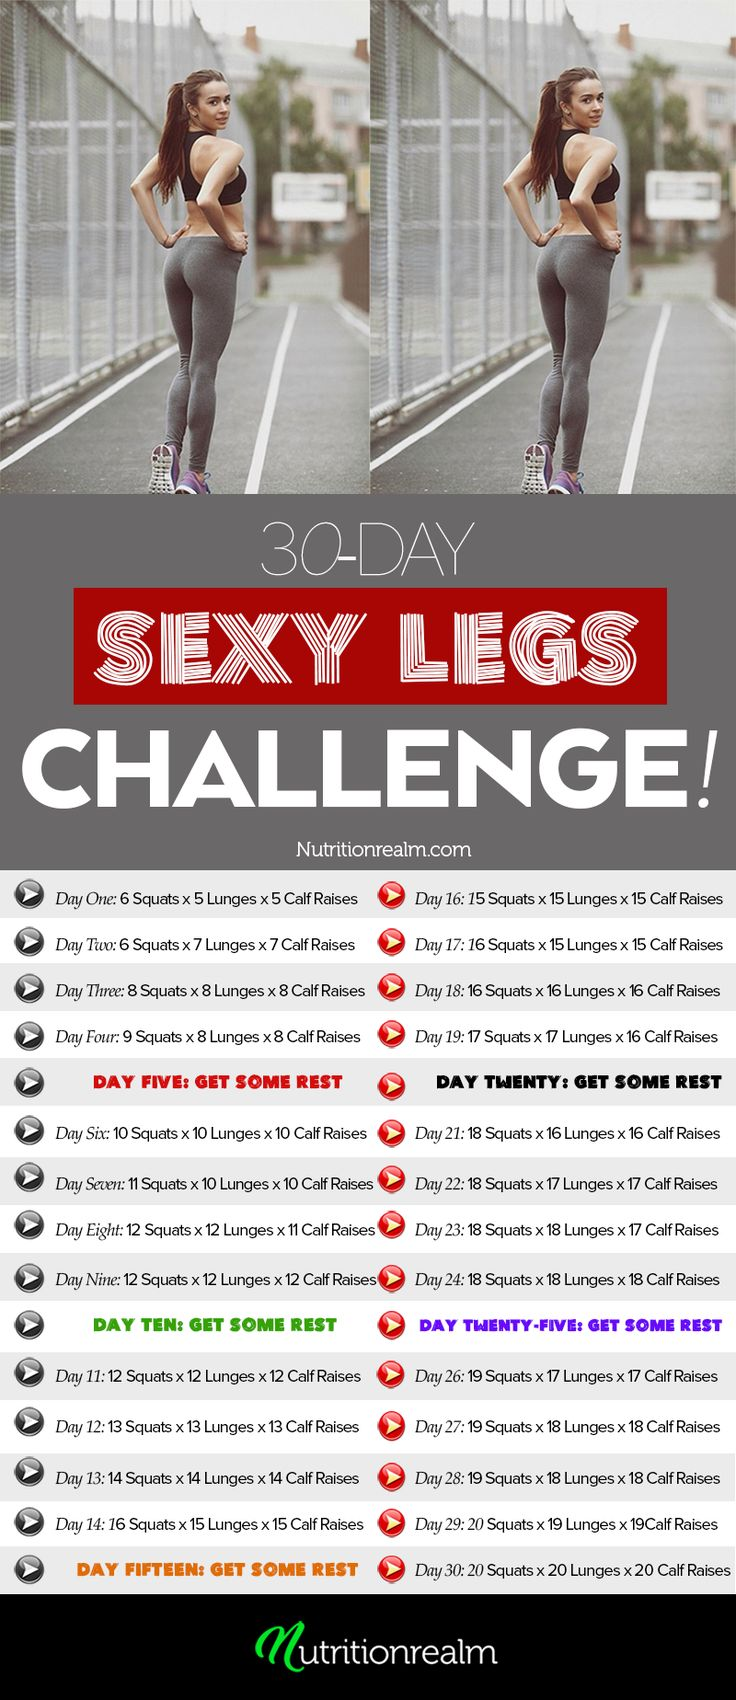 Exercises for sexy legs